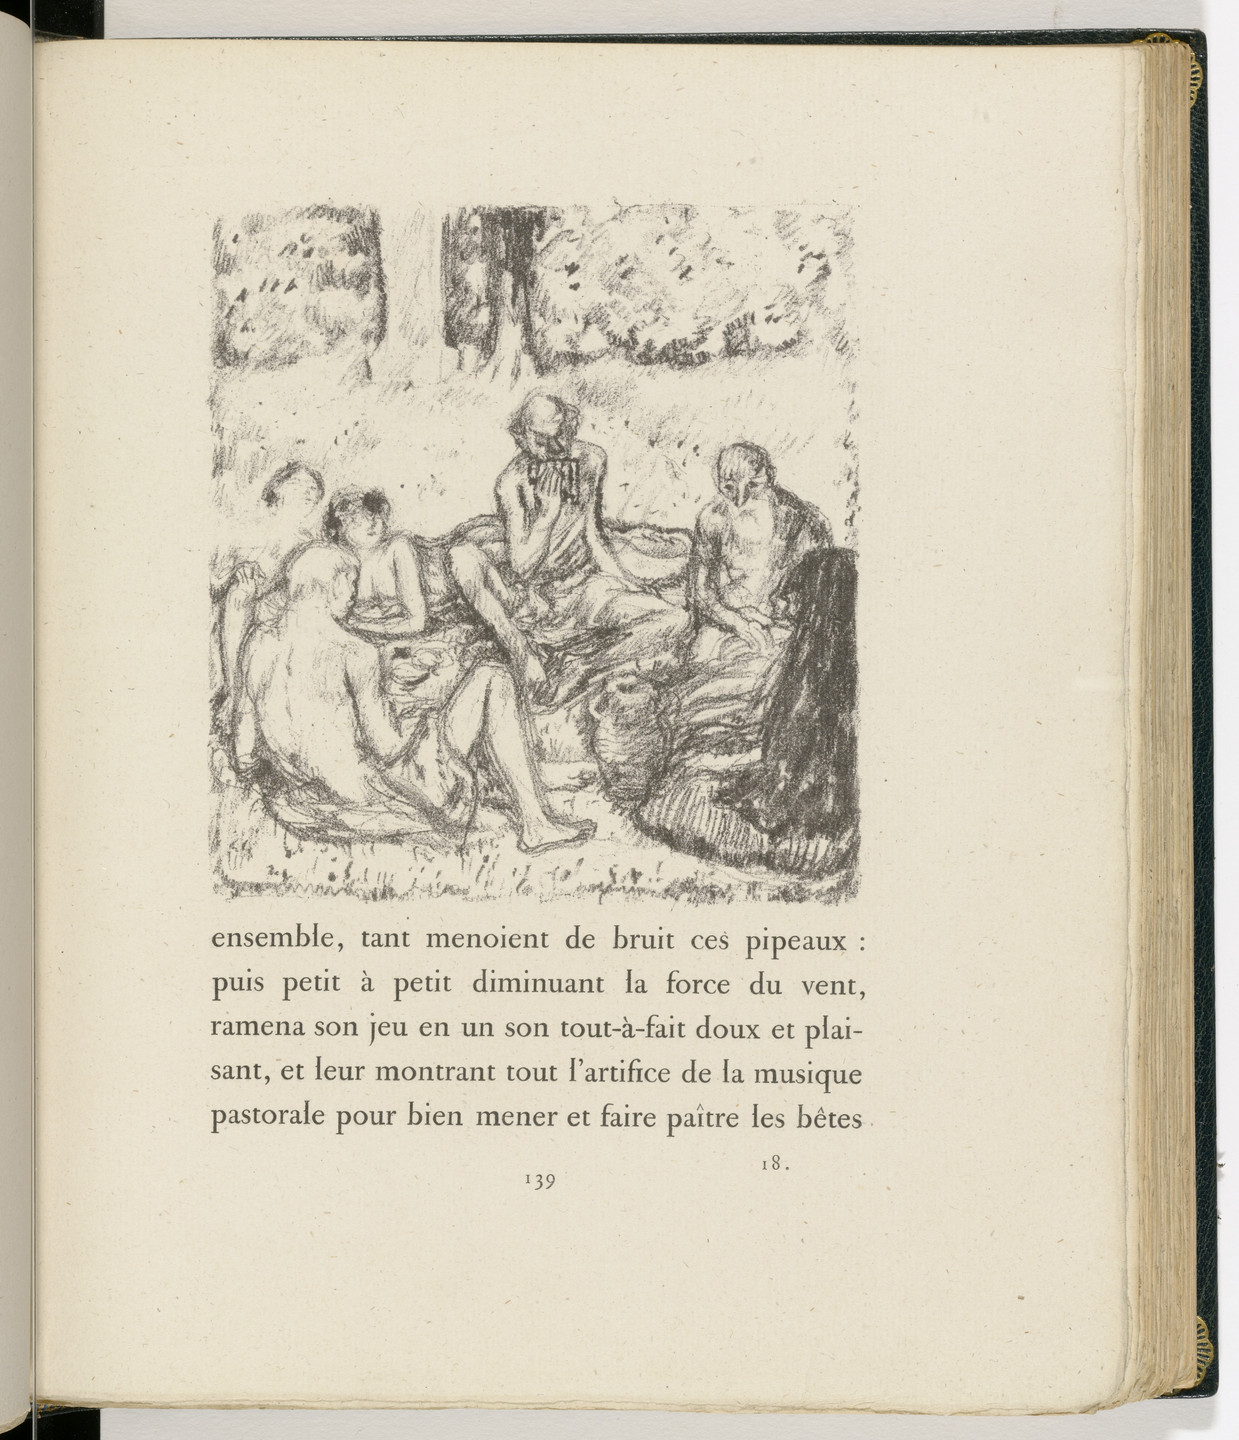 Pierre Bonnard. In-text plate (page 139) from Daphnis et Chloé. 1902